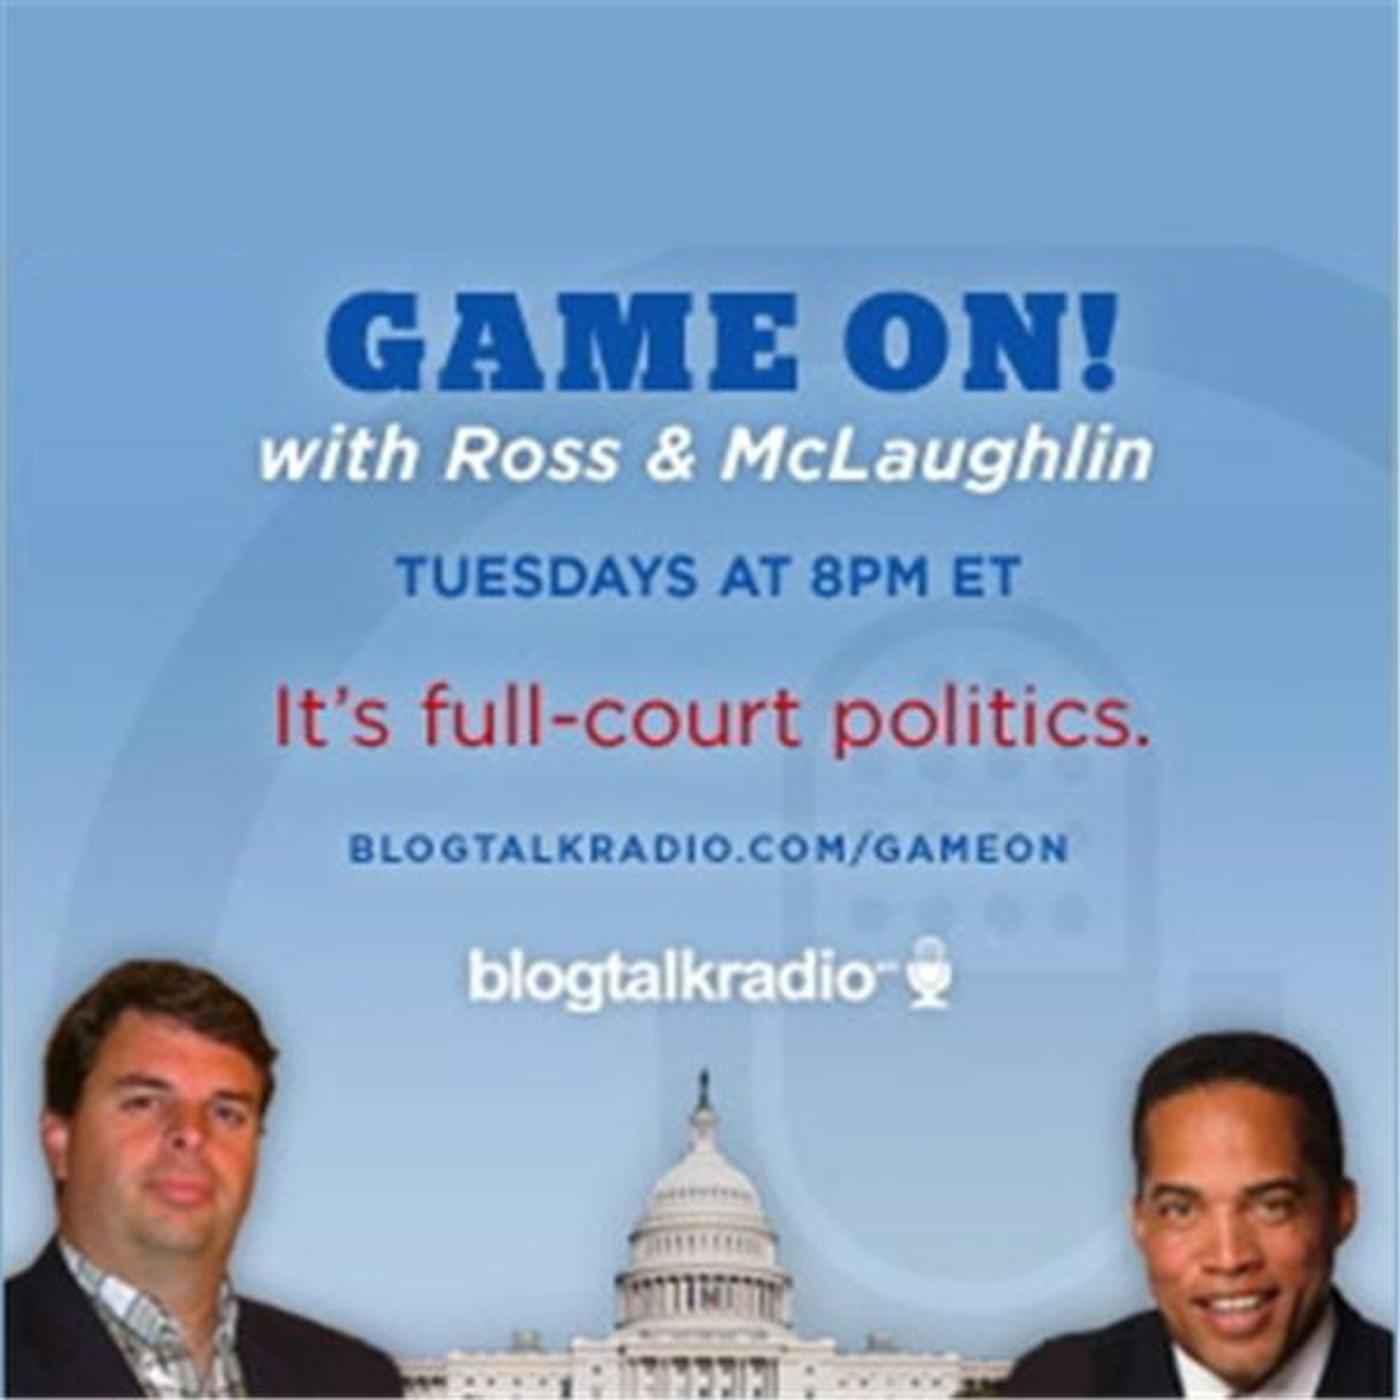 Game On! with Ross & McLaughlin